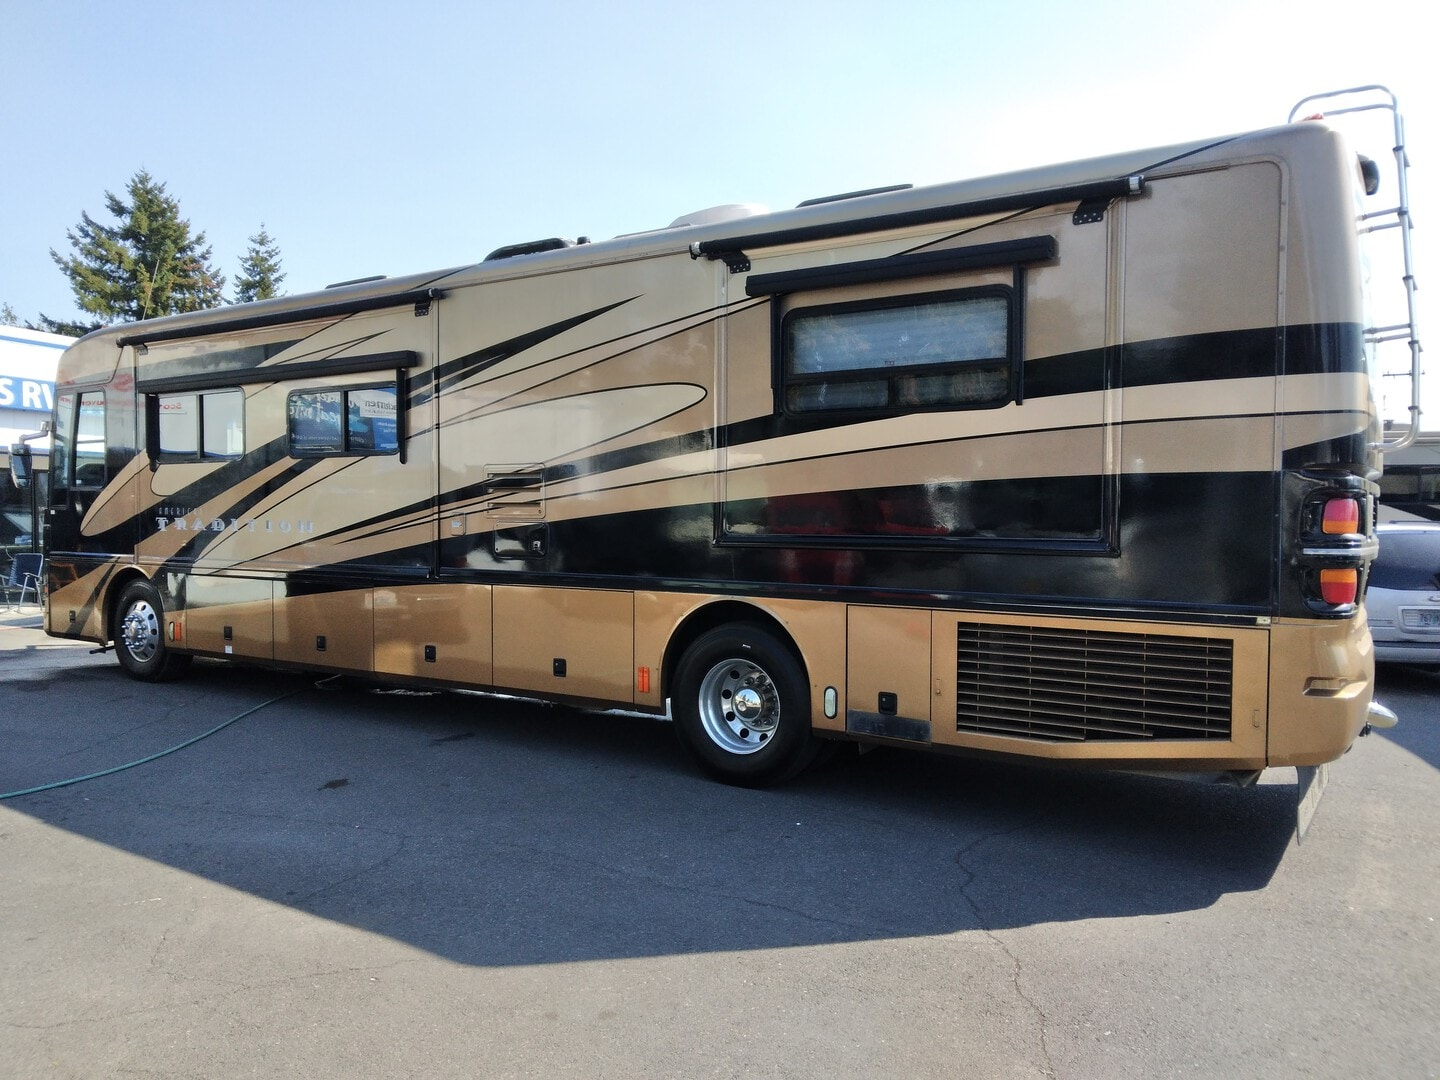 Used, 2004, Fleetwood, AMERICAN TRADITION, RV - Class A